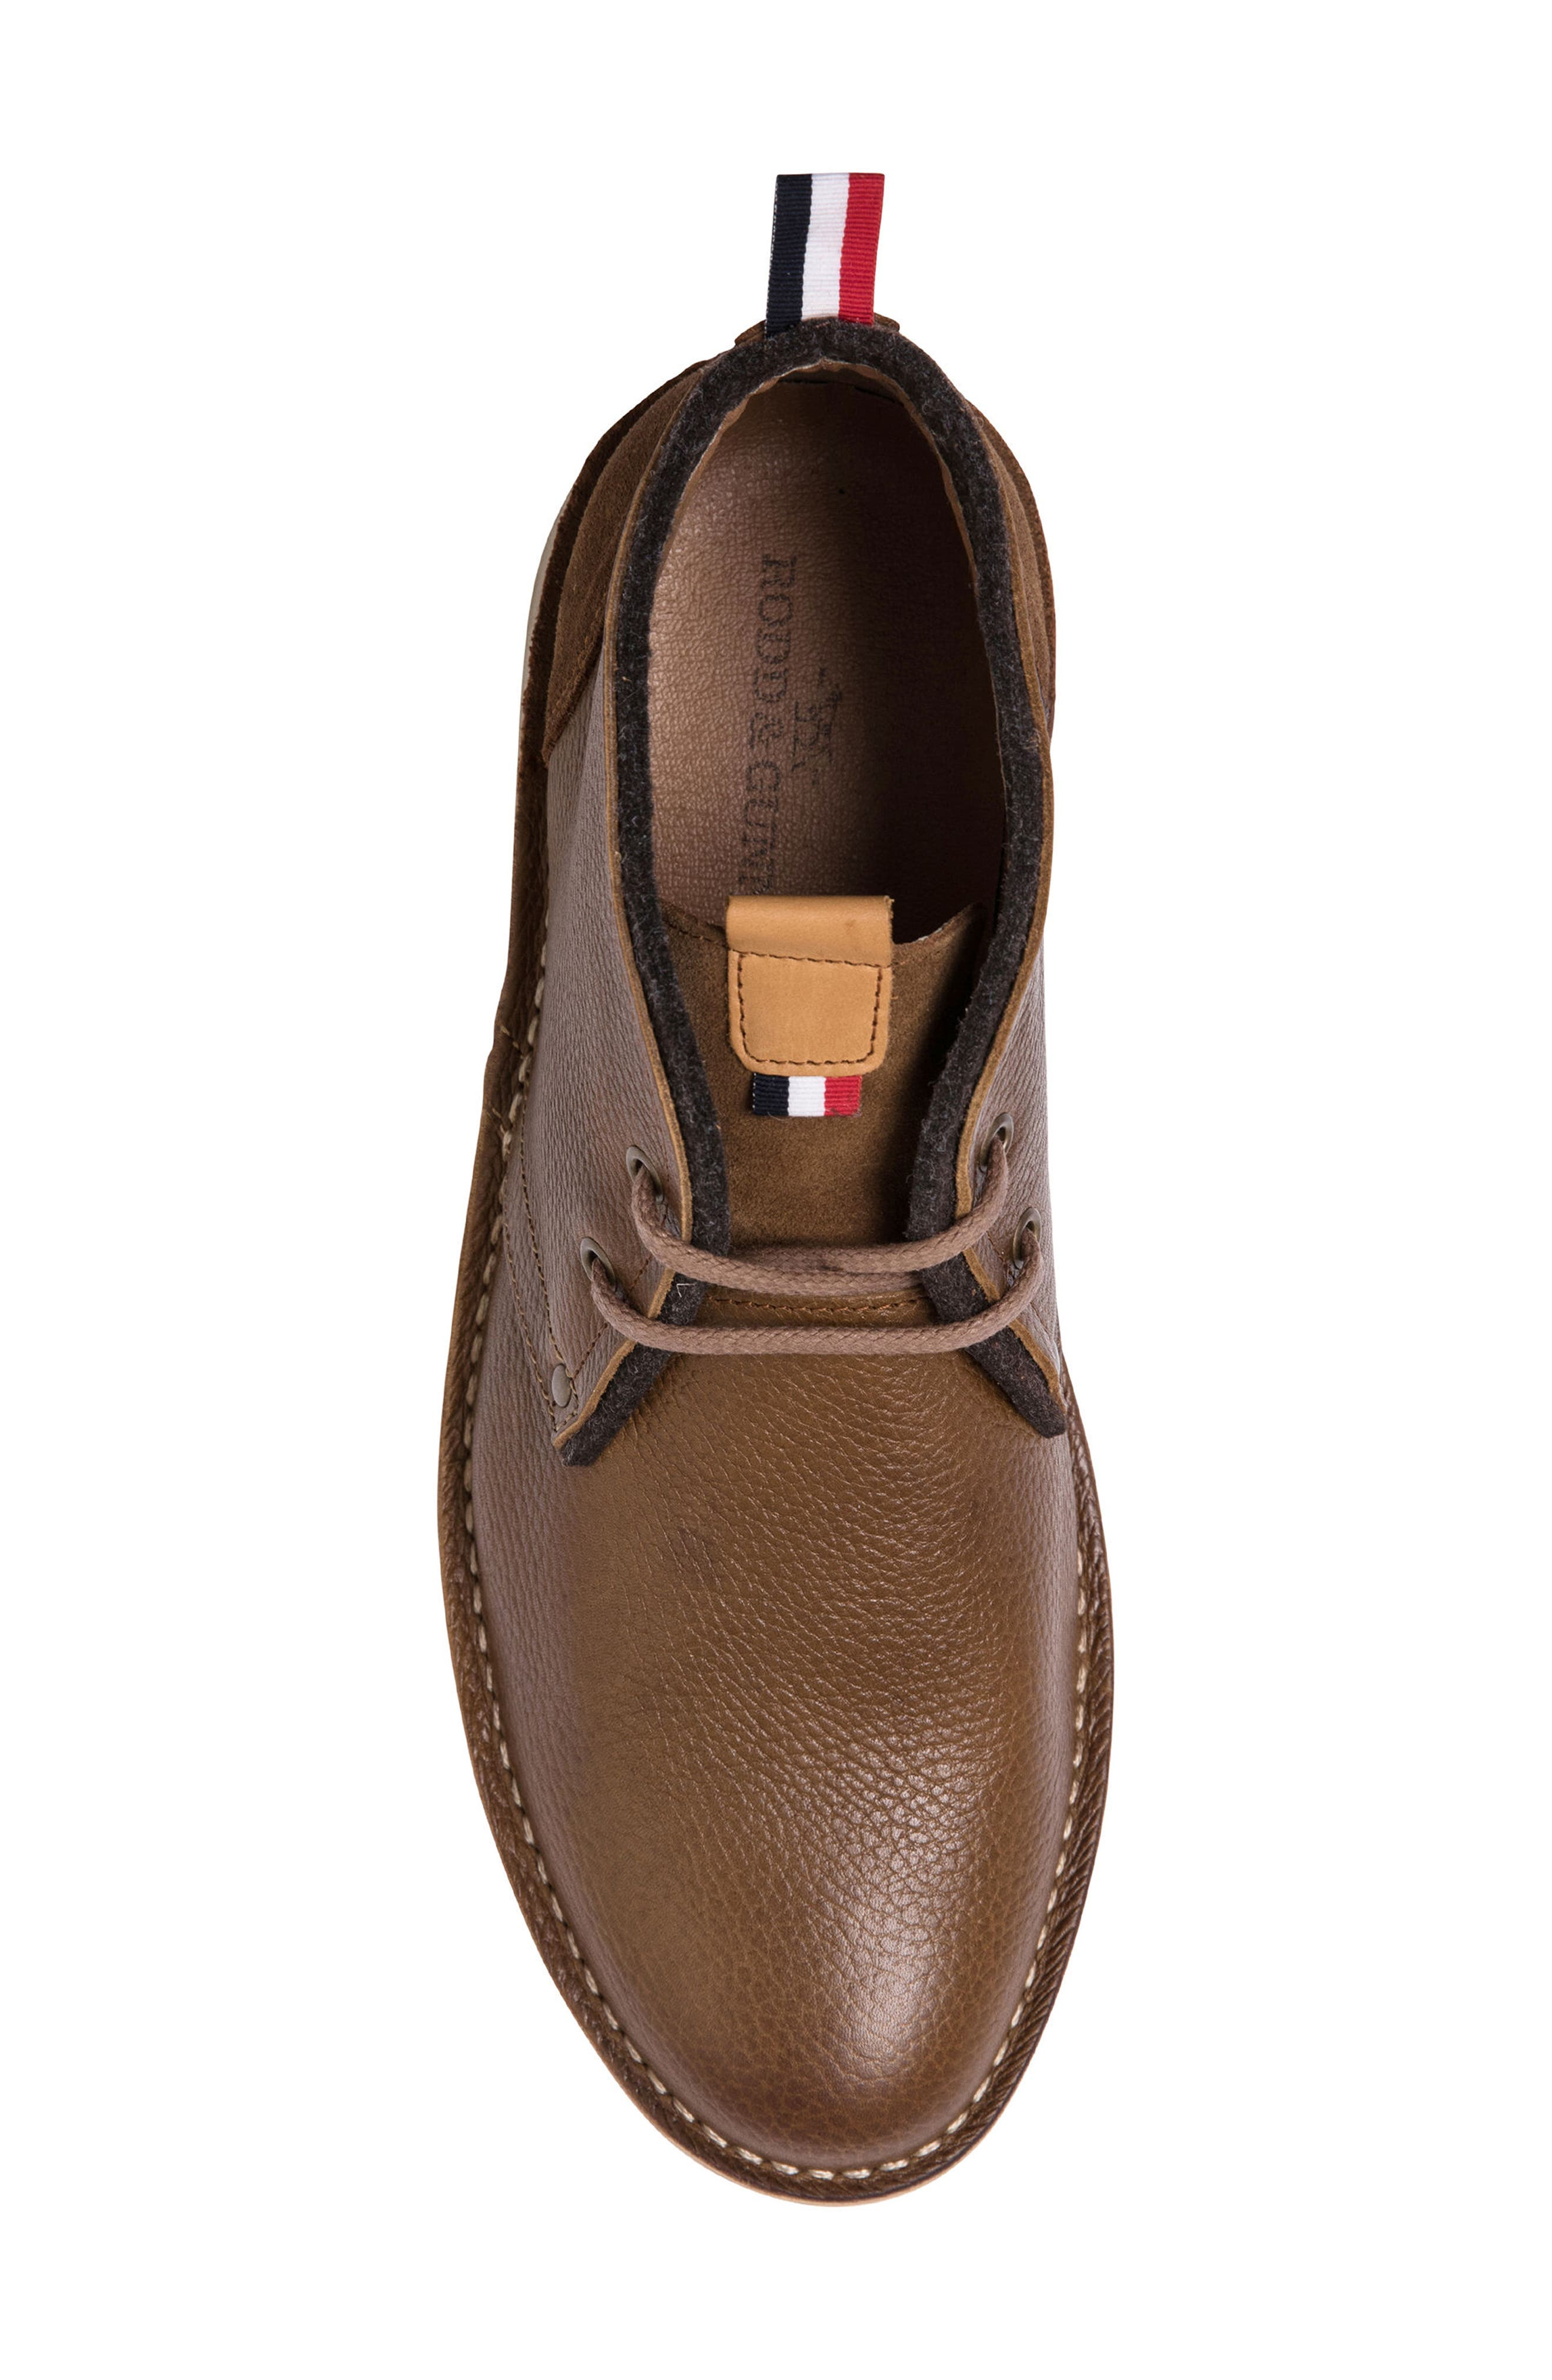 Drury Chukka Boot,                             Alternate thumbnail 5, color,                             218